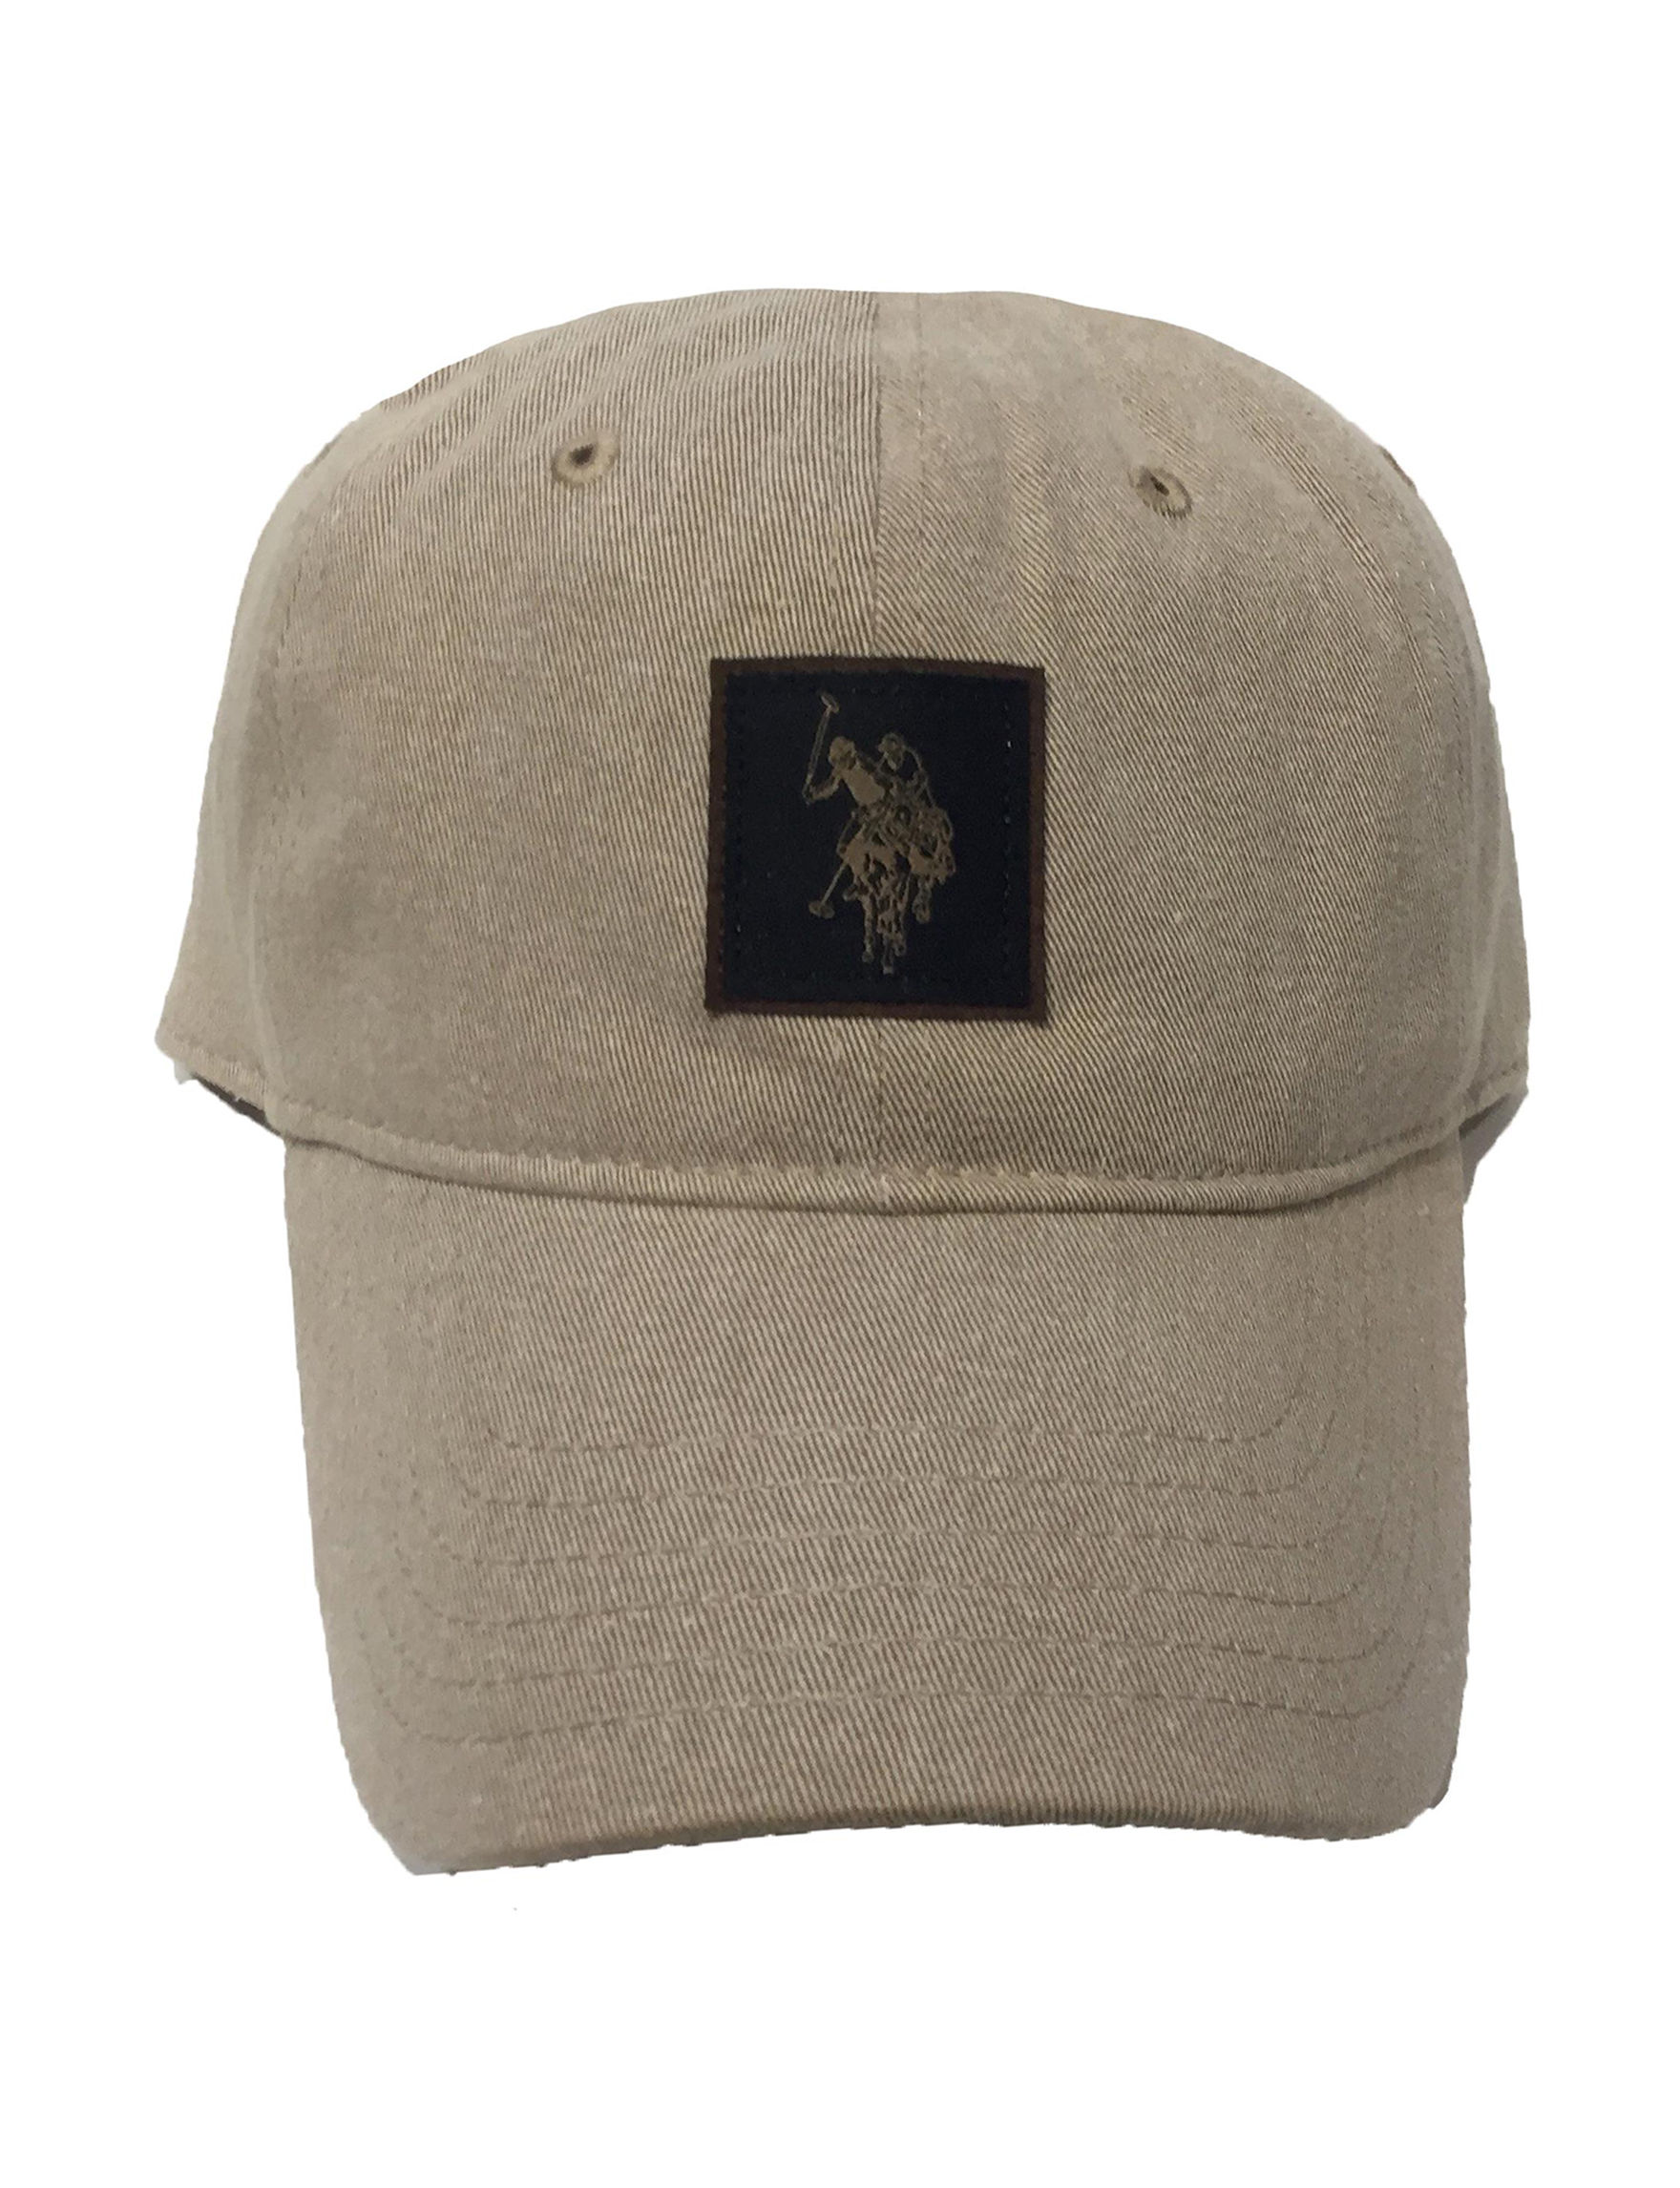 U.S. Polo Assn. Khaki Hats & Headwear